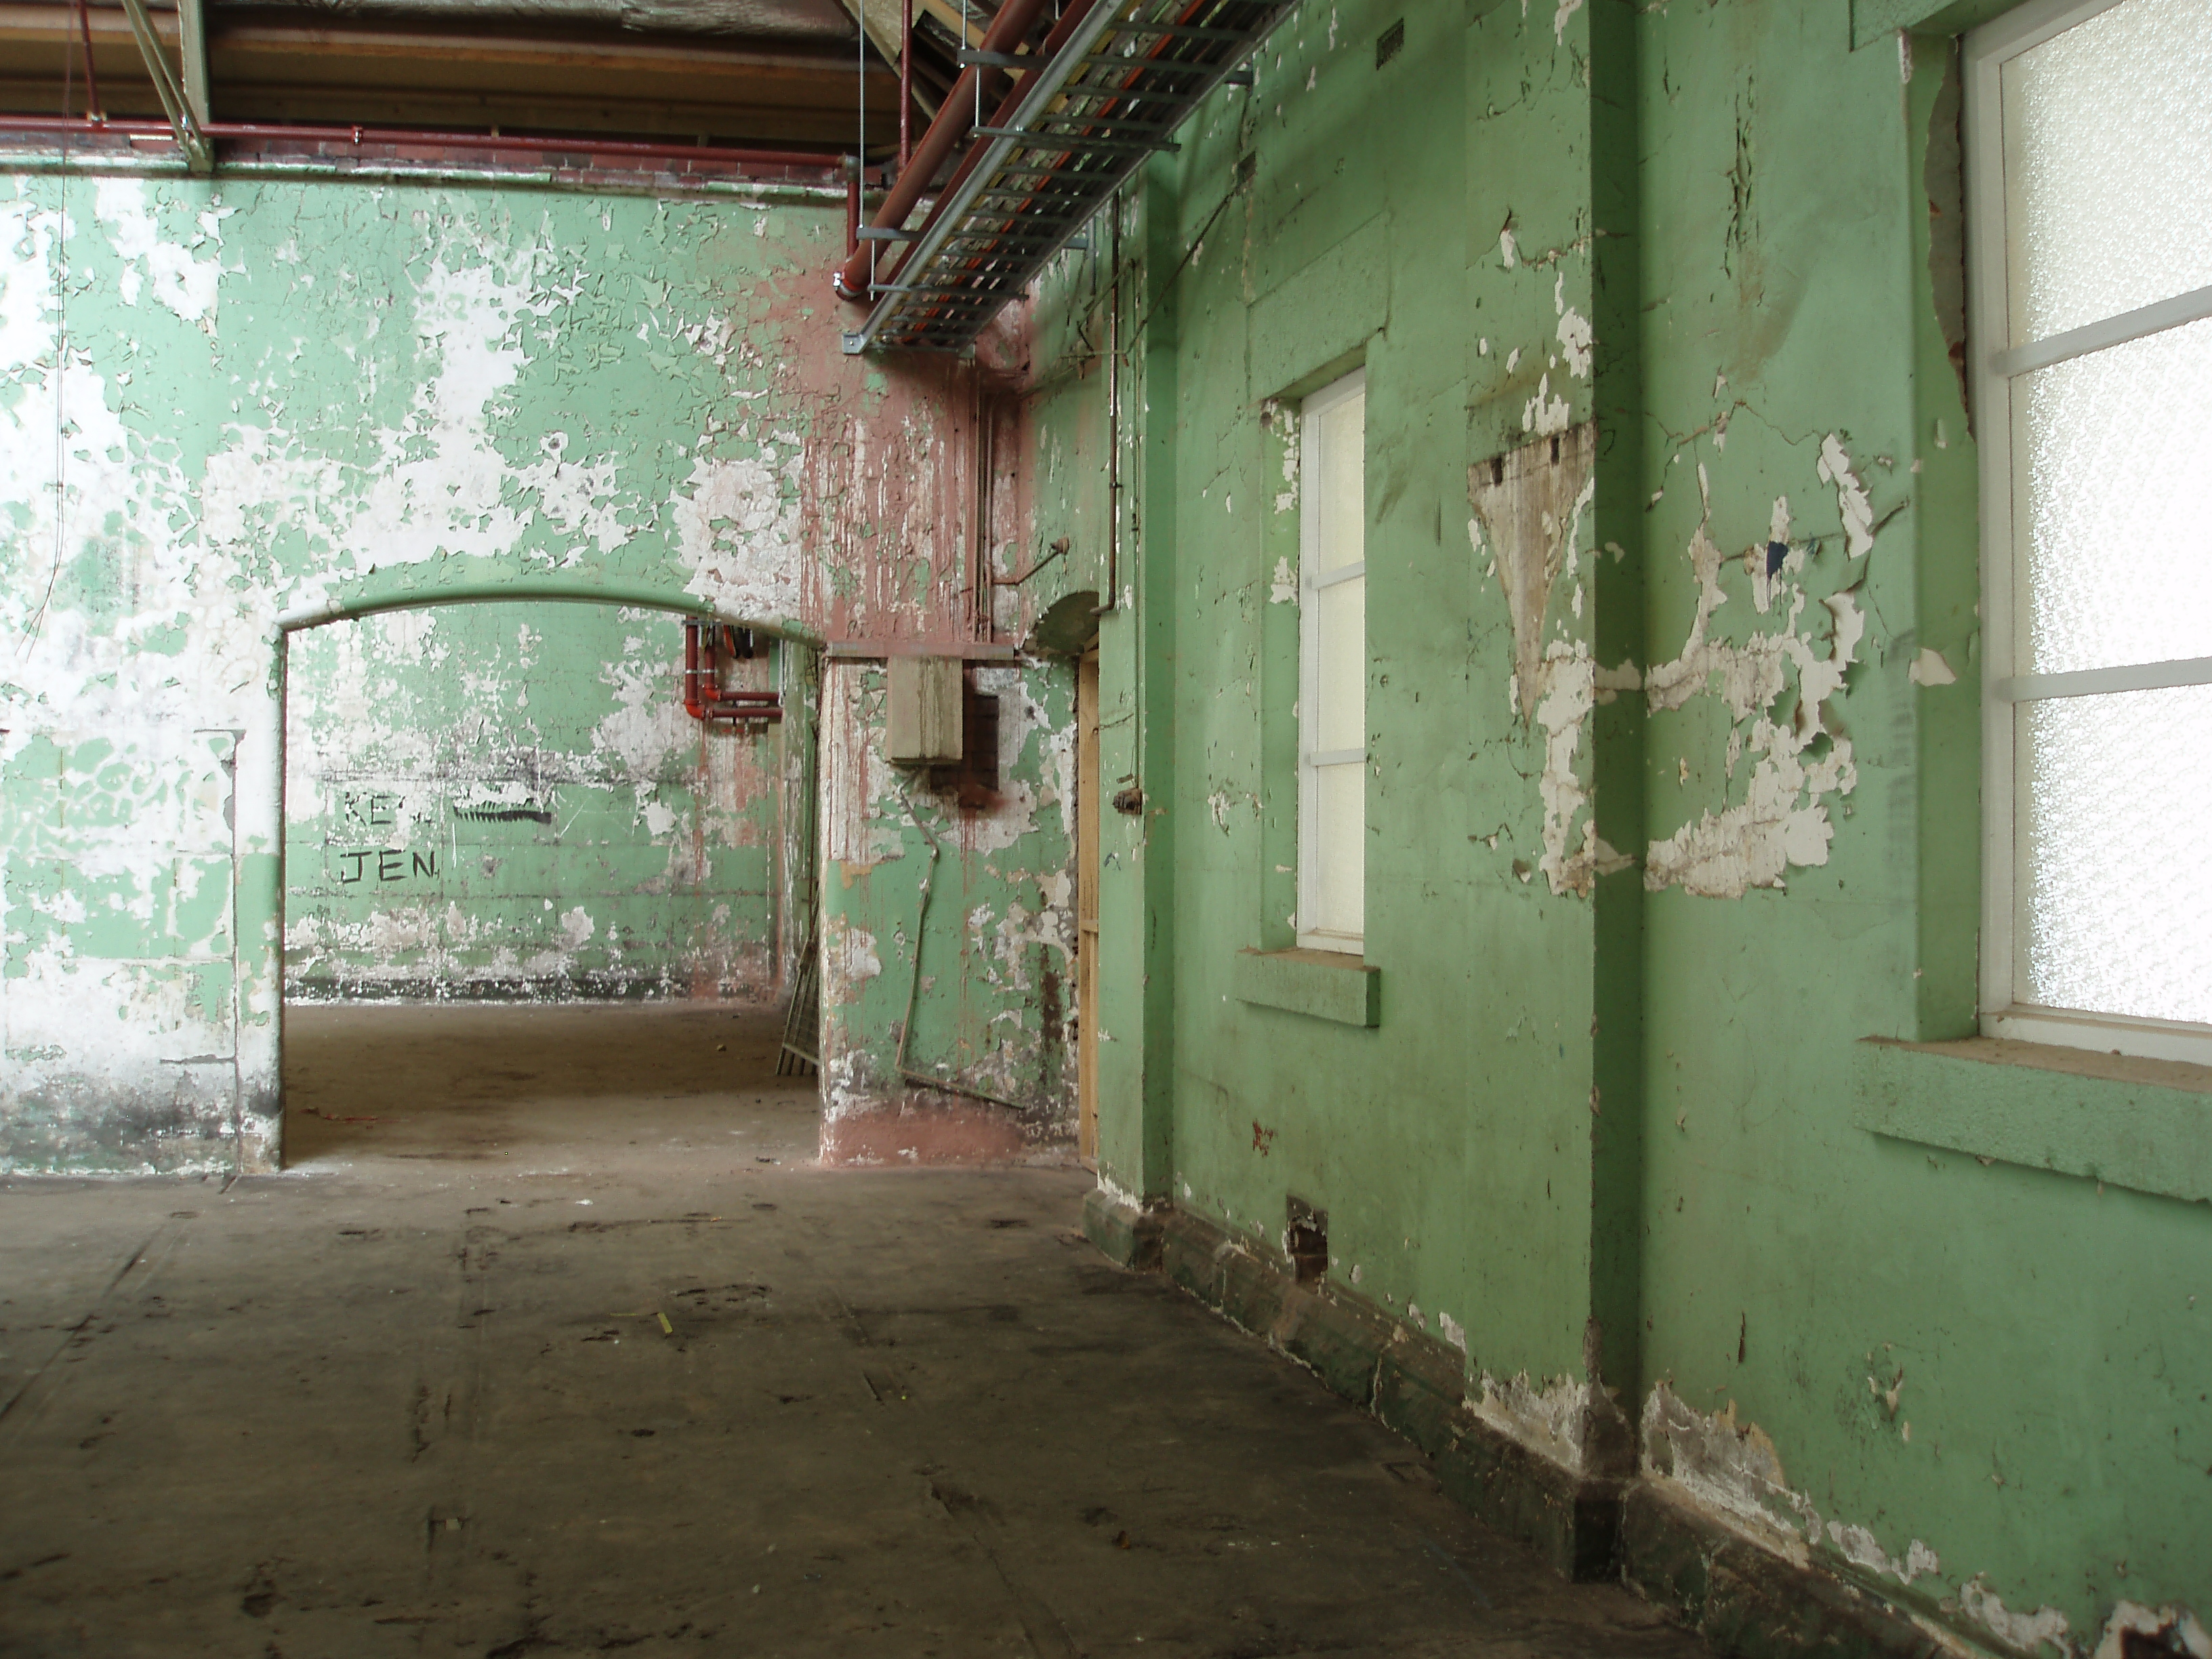 interior of an old building with paint flaking from the walls